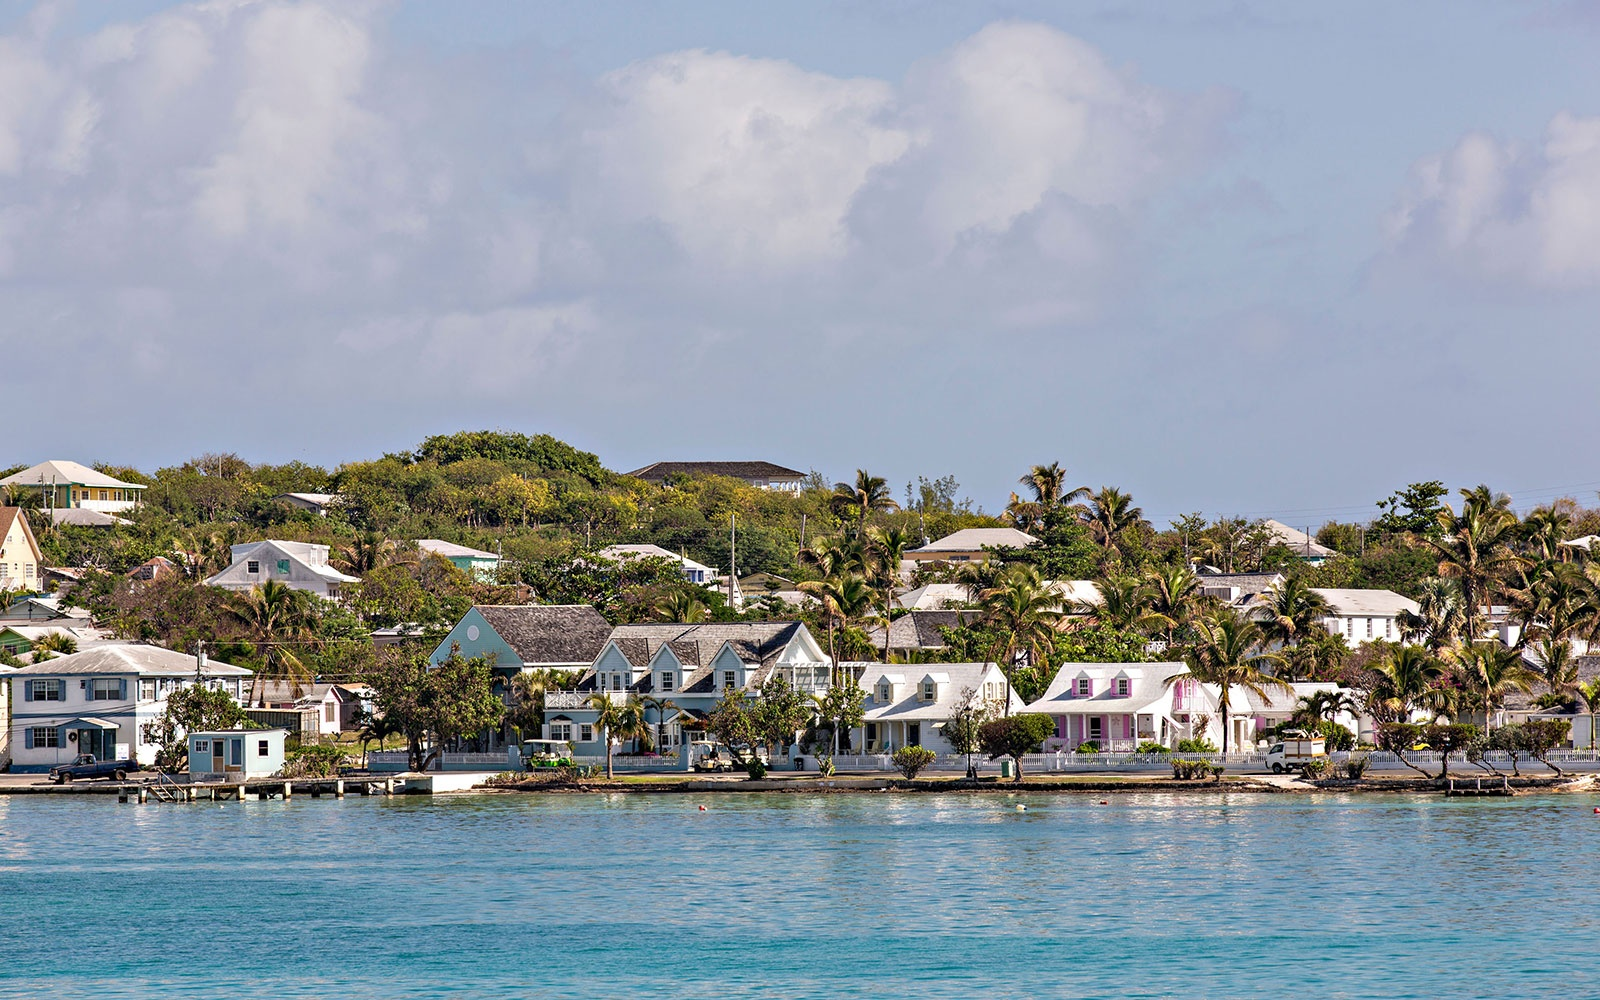 Harbour Island In The Bahamas Is Never Short On Stylish Places To Stay